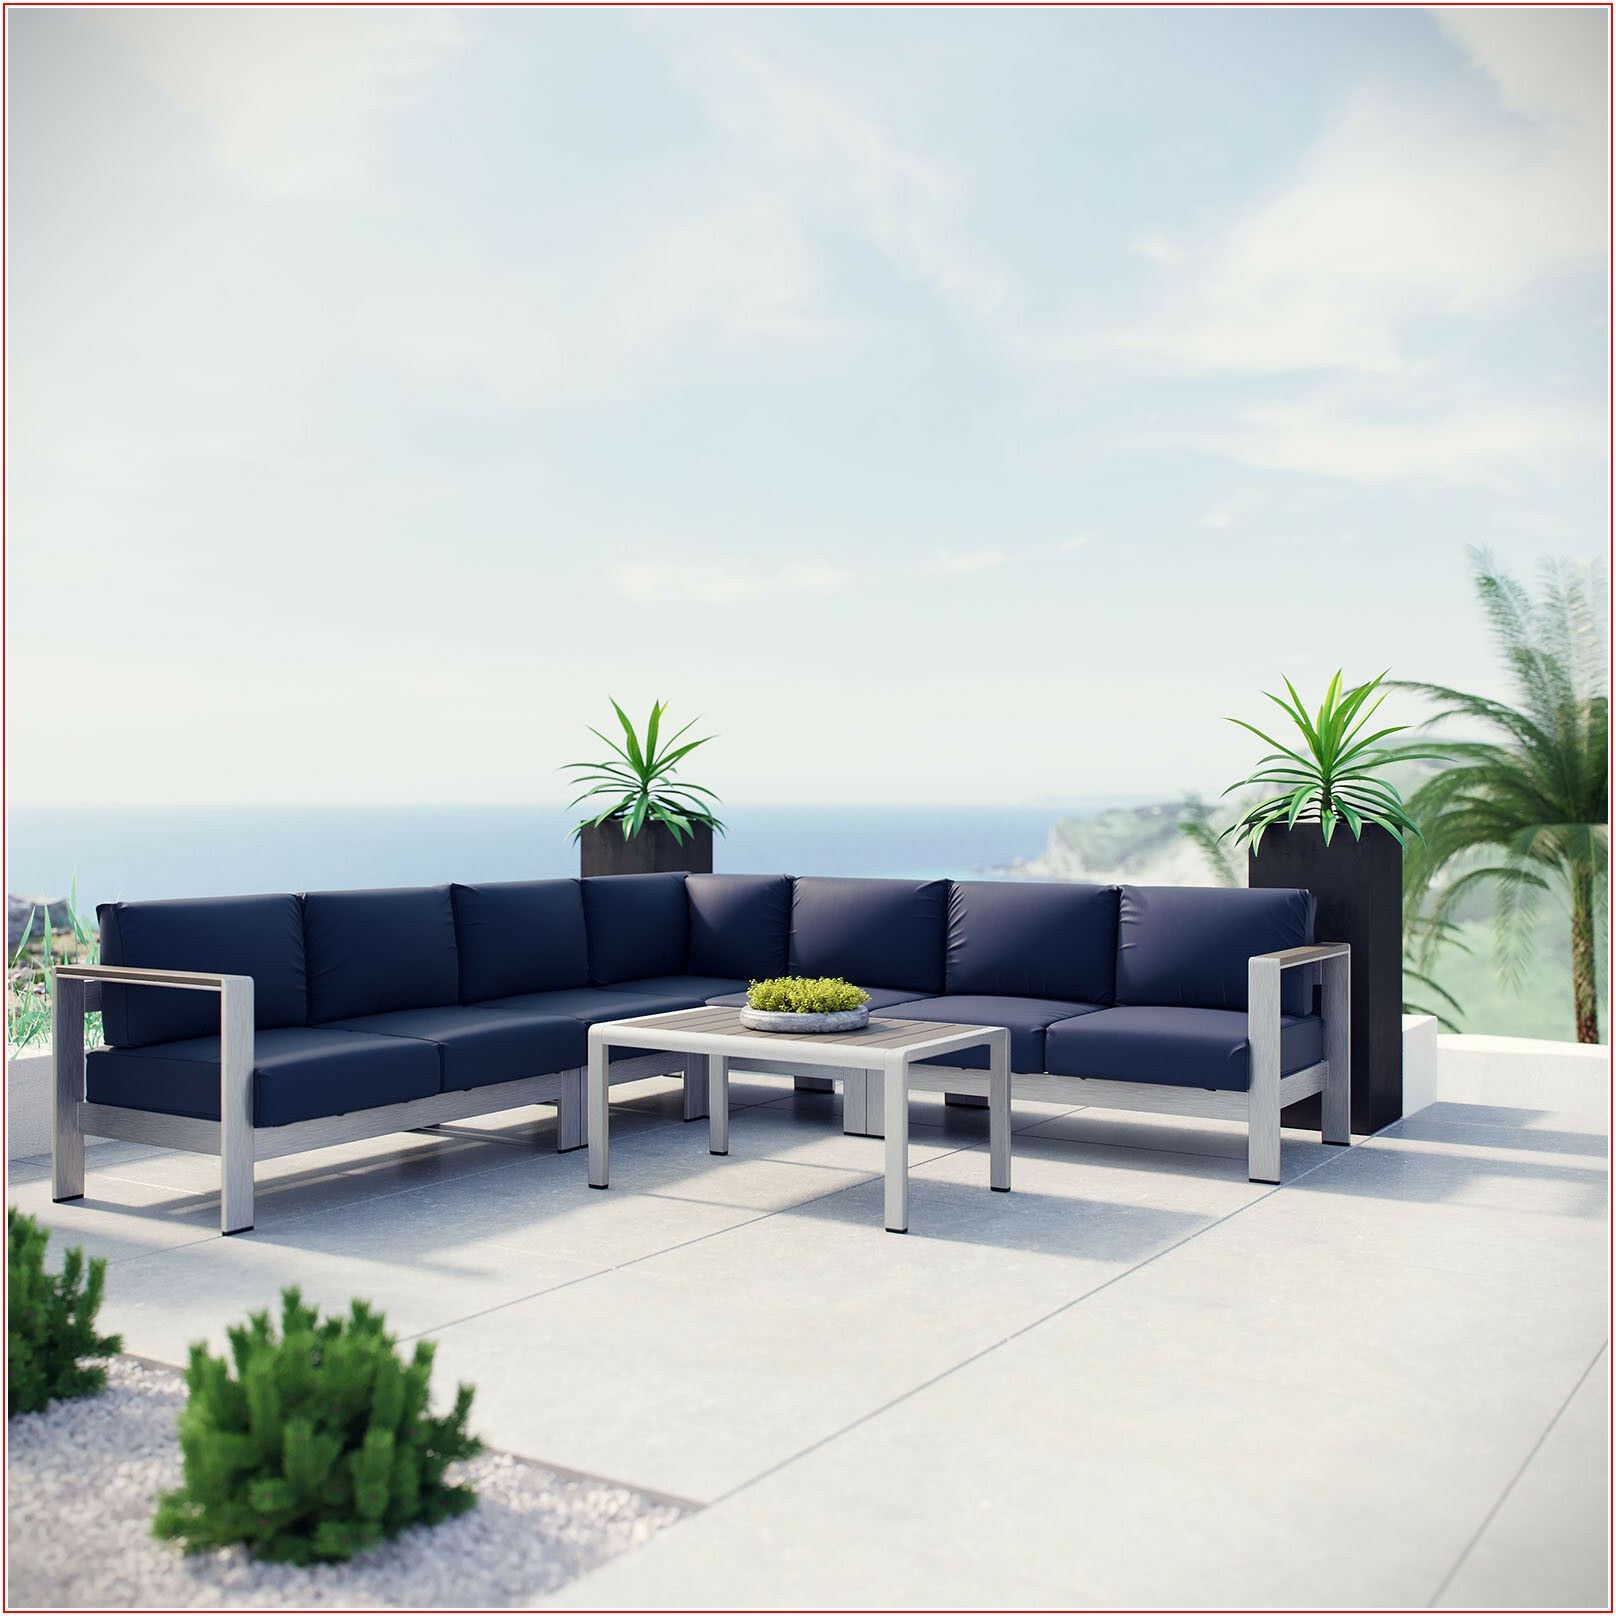 Aluminum Patio Sofa Set